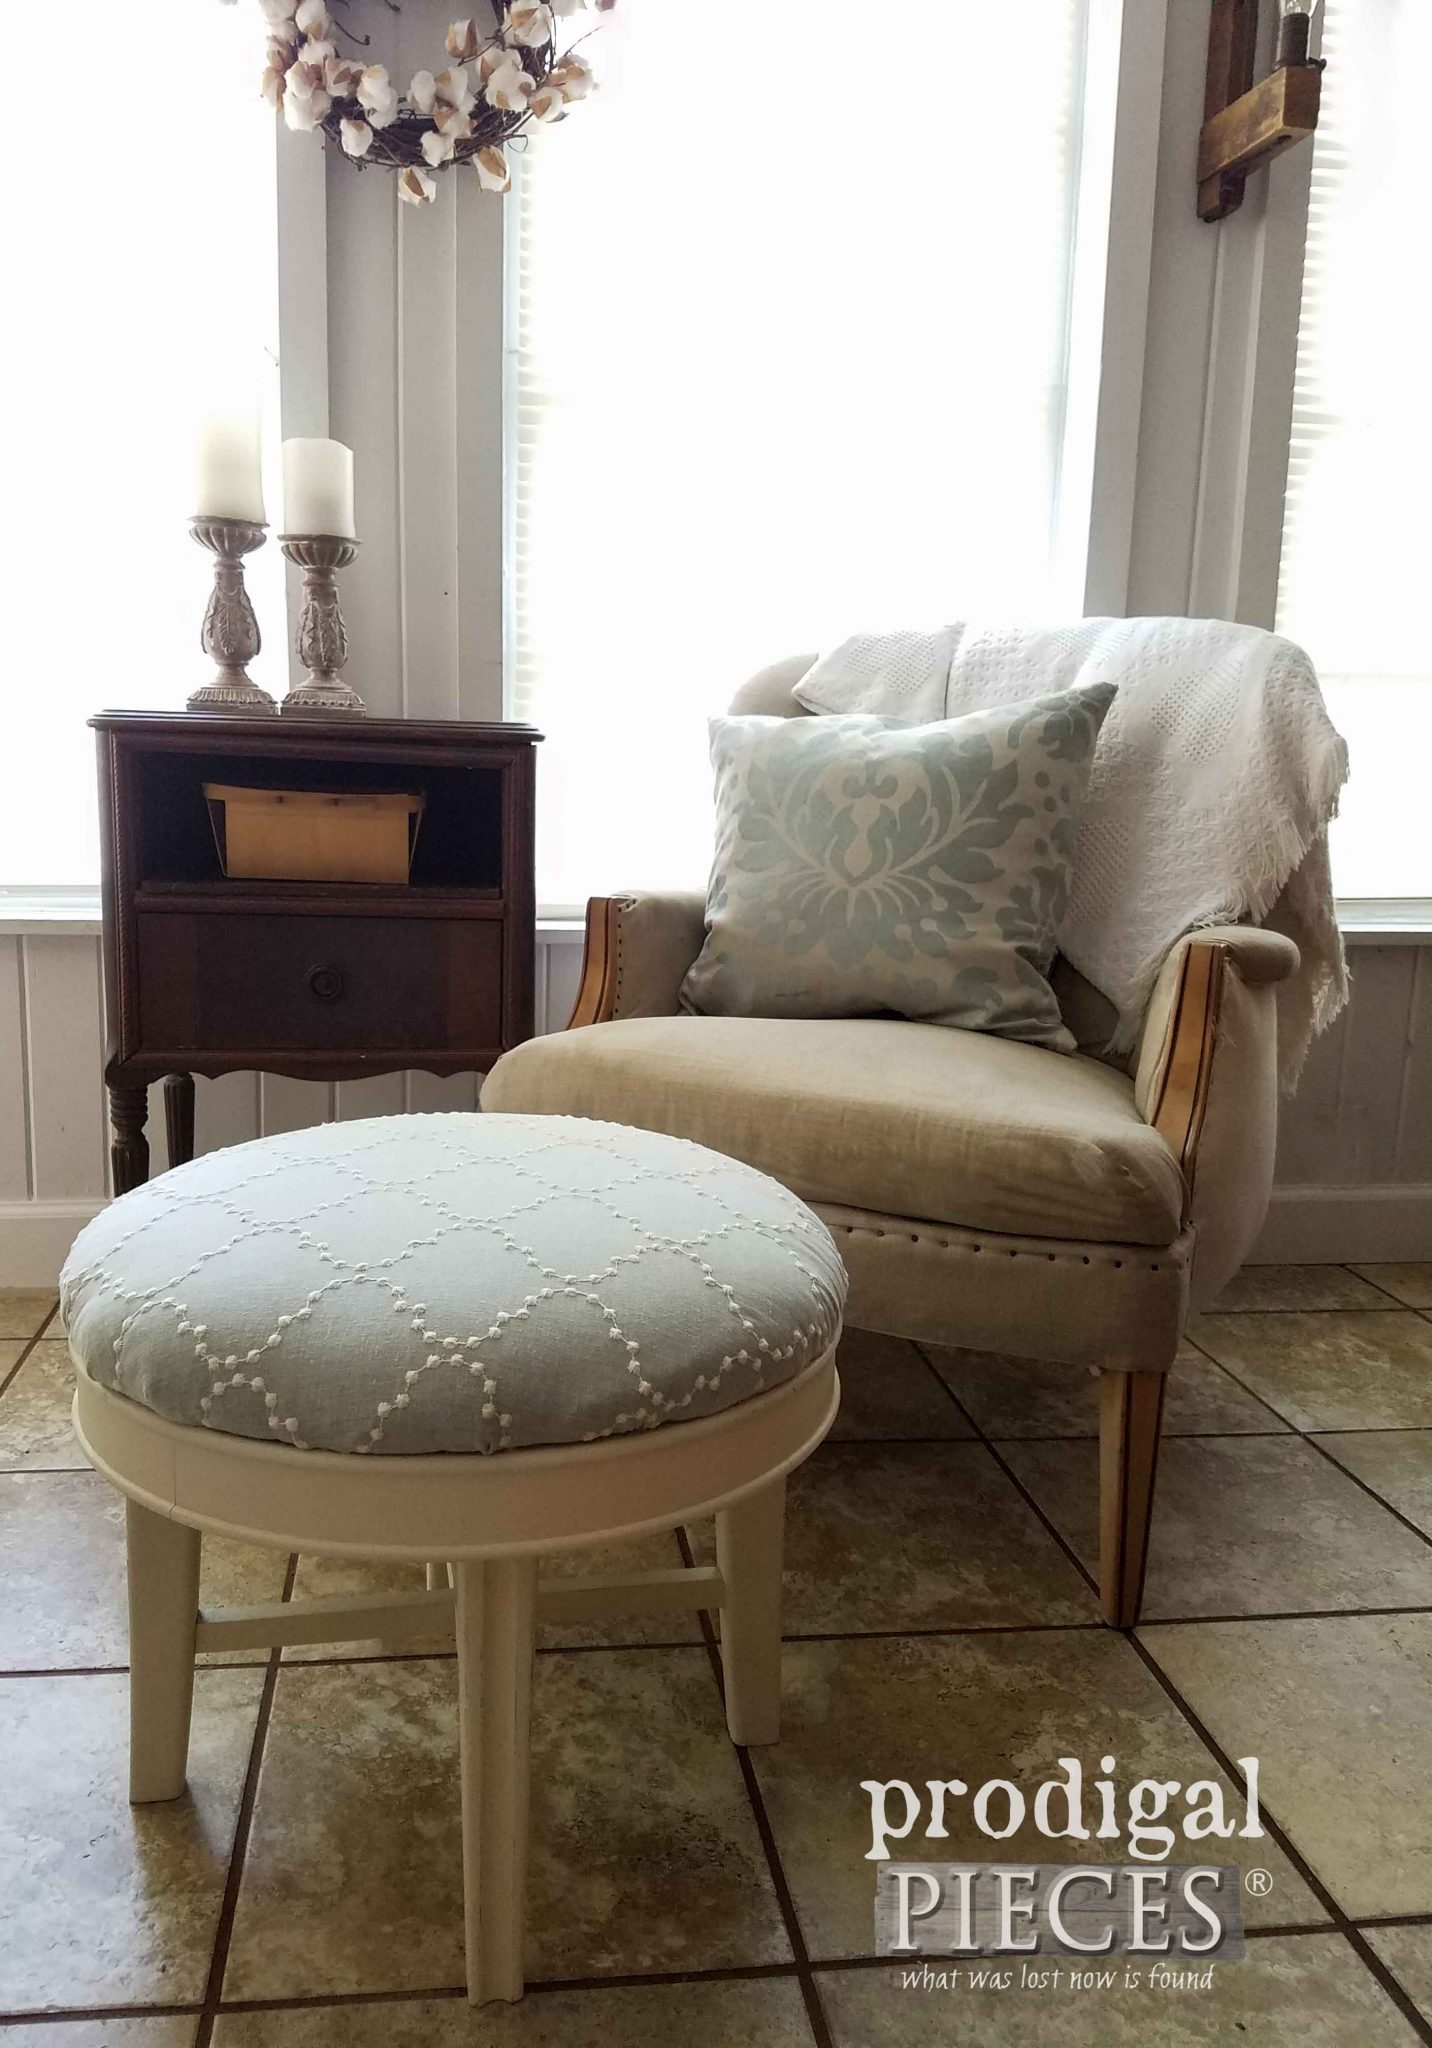 Vintage Ottoman and Chair refreshed with upholstery and paint. DIY at prodigalpieces.com